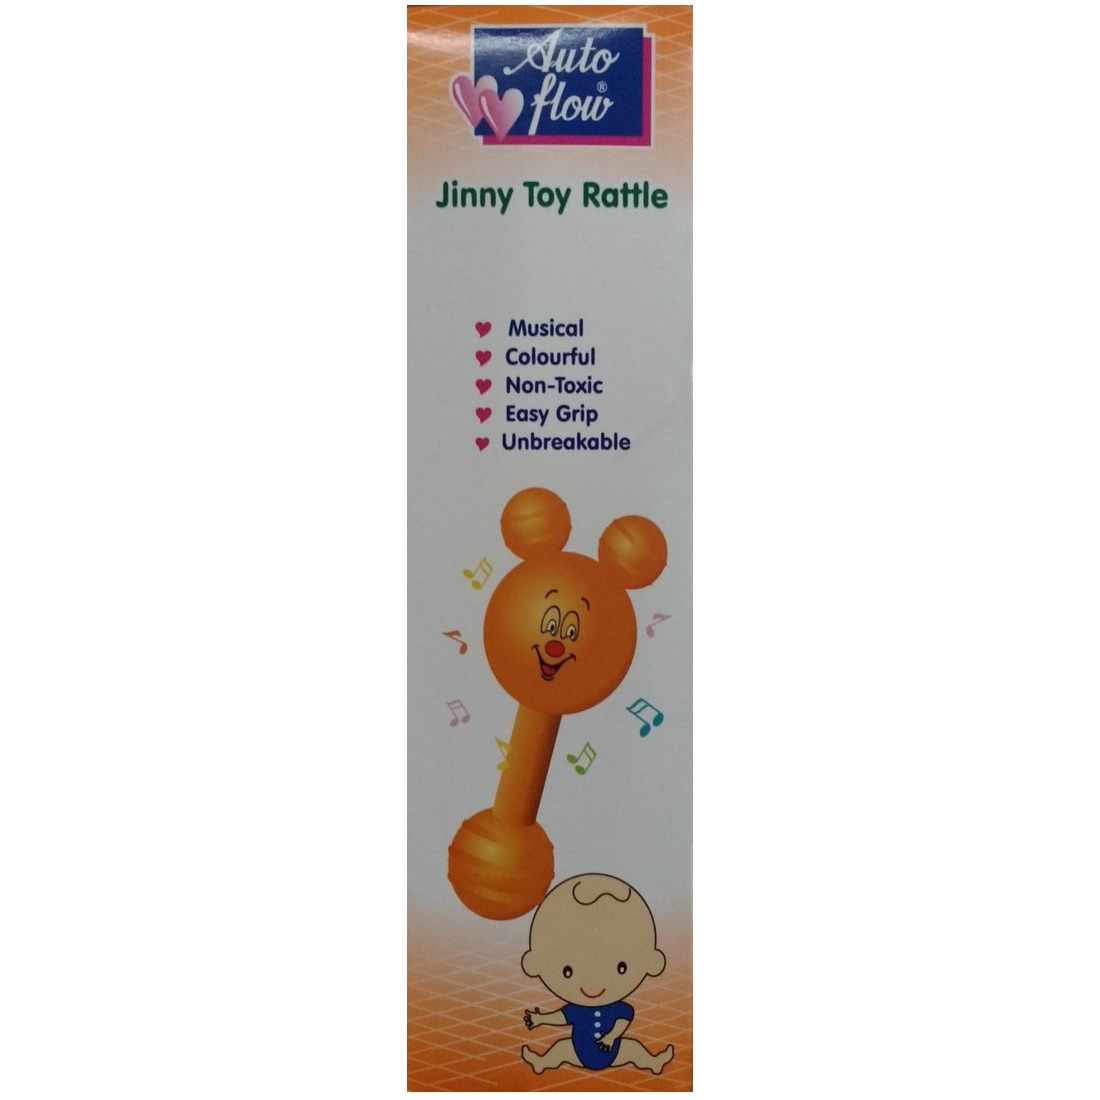 Auto Flow Rattle Toy - Jinny Toy - BT27 Combo Green